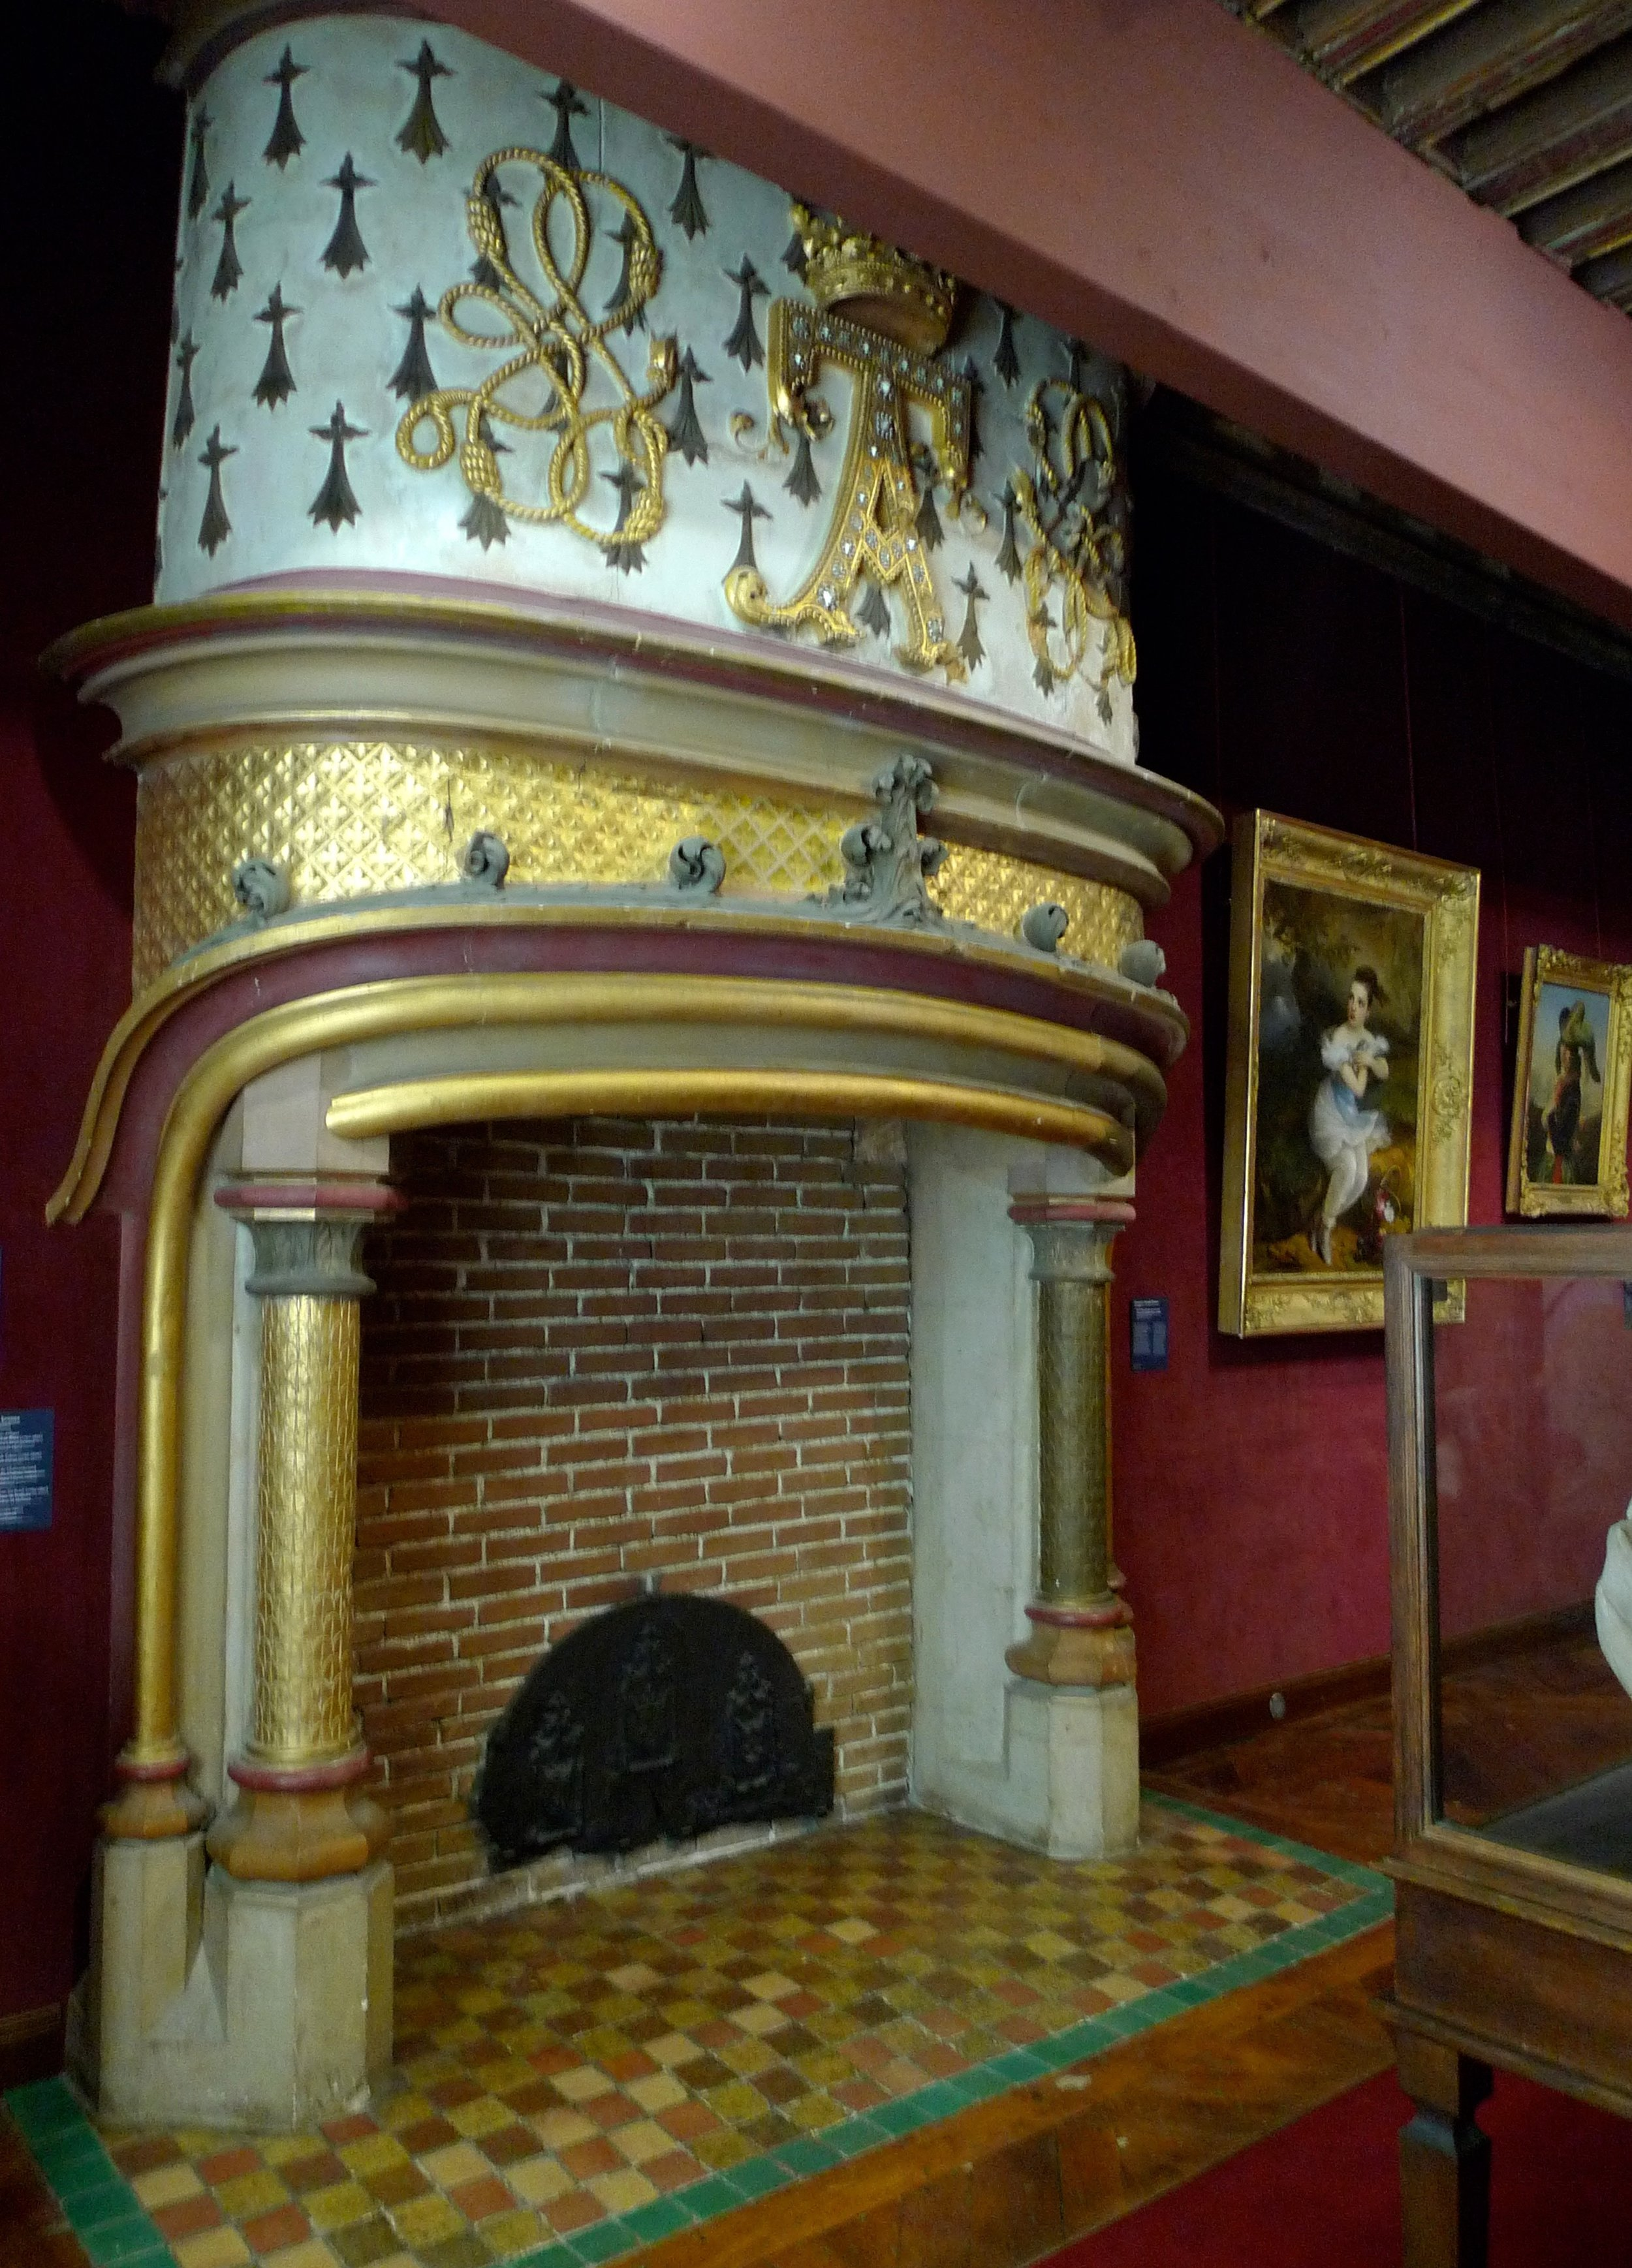 And yes, there are a lot of fireplaces in the chateau